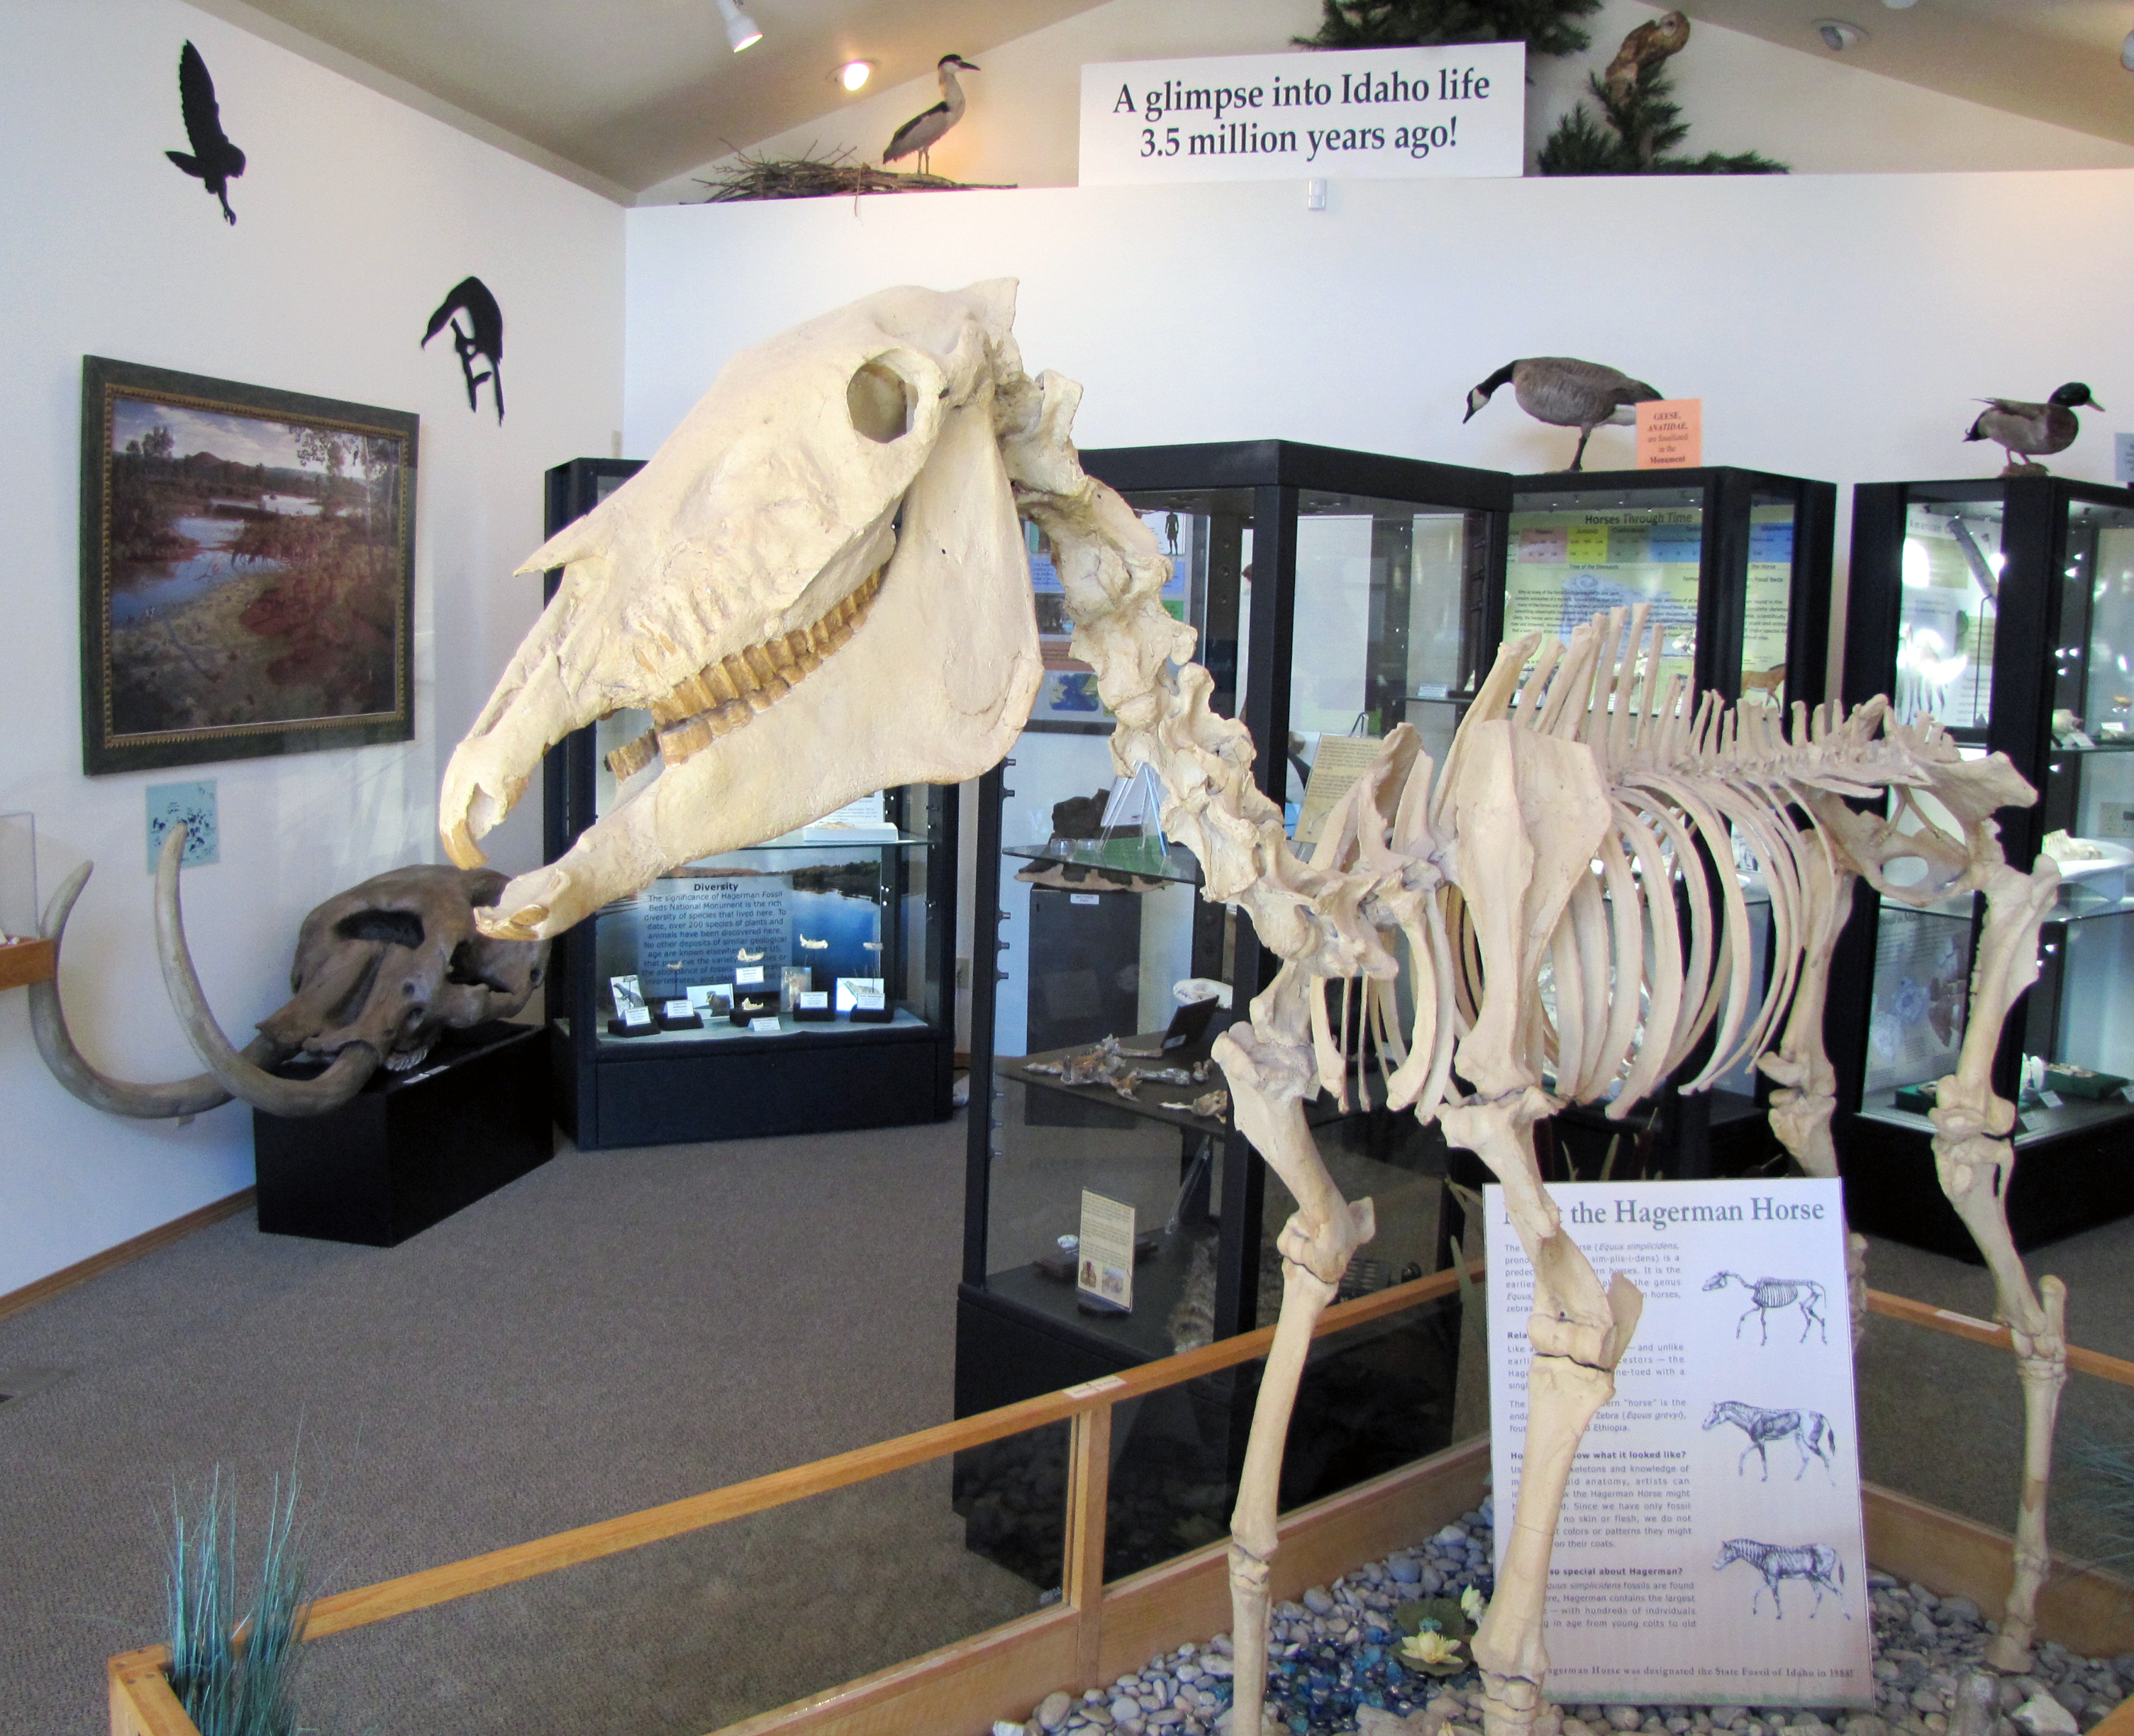 fossil cast of Hagerman horse skeleton